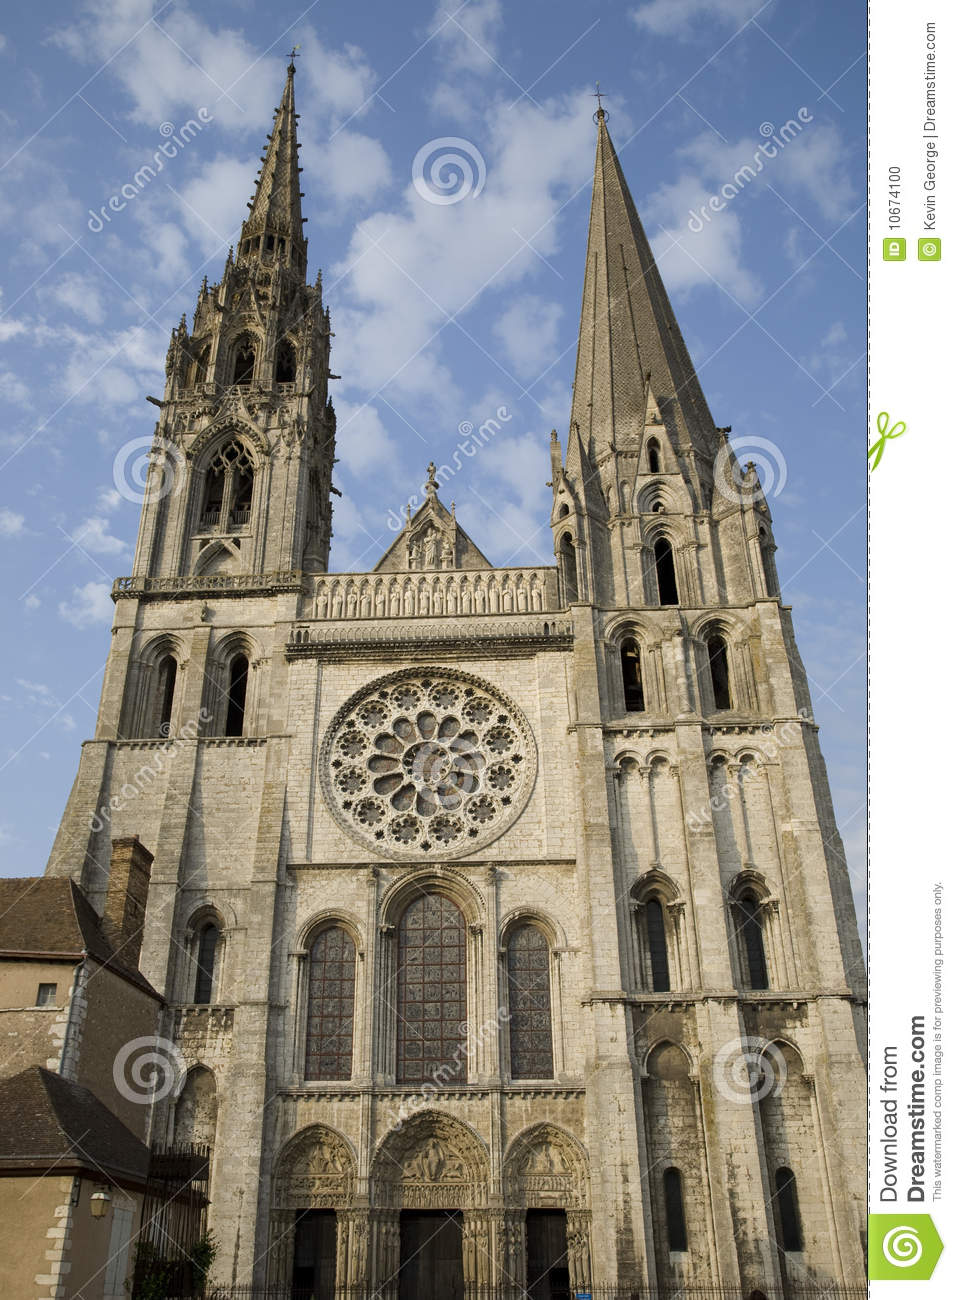 main facade chartres cathedral france stock photo. Black Bedroom Furniture Sets. Home Design Ideas